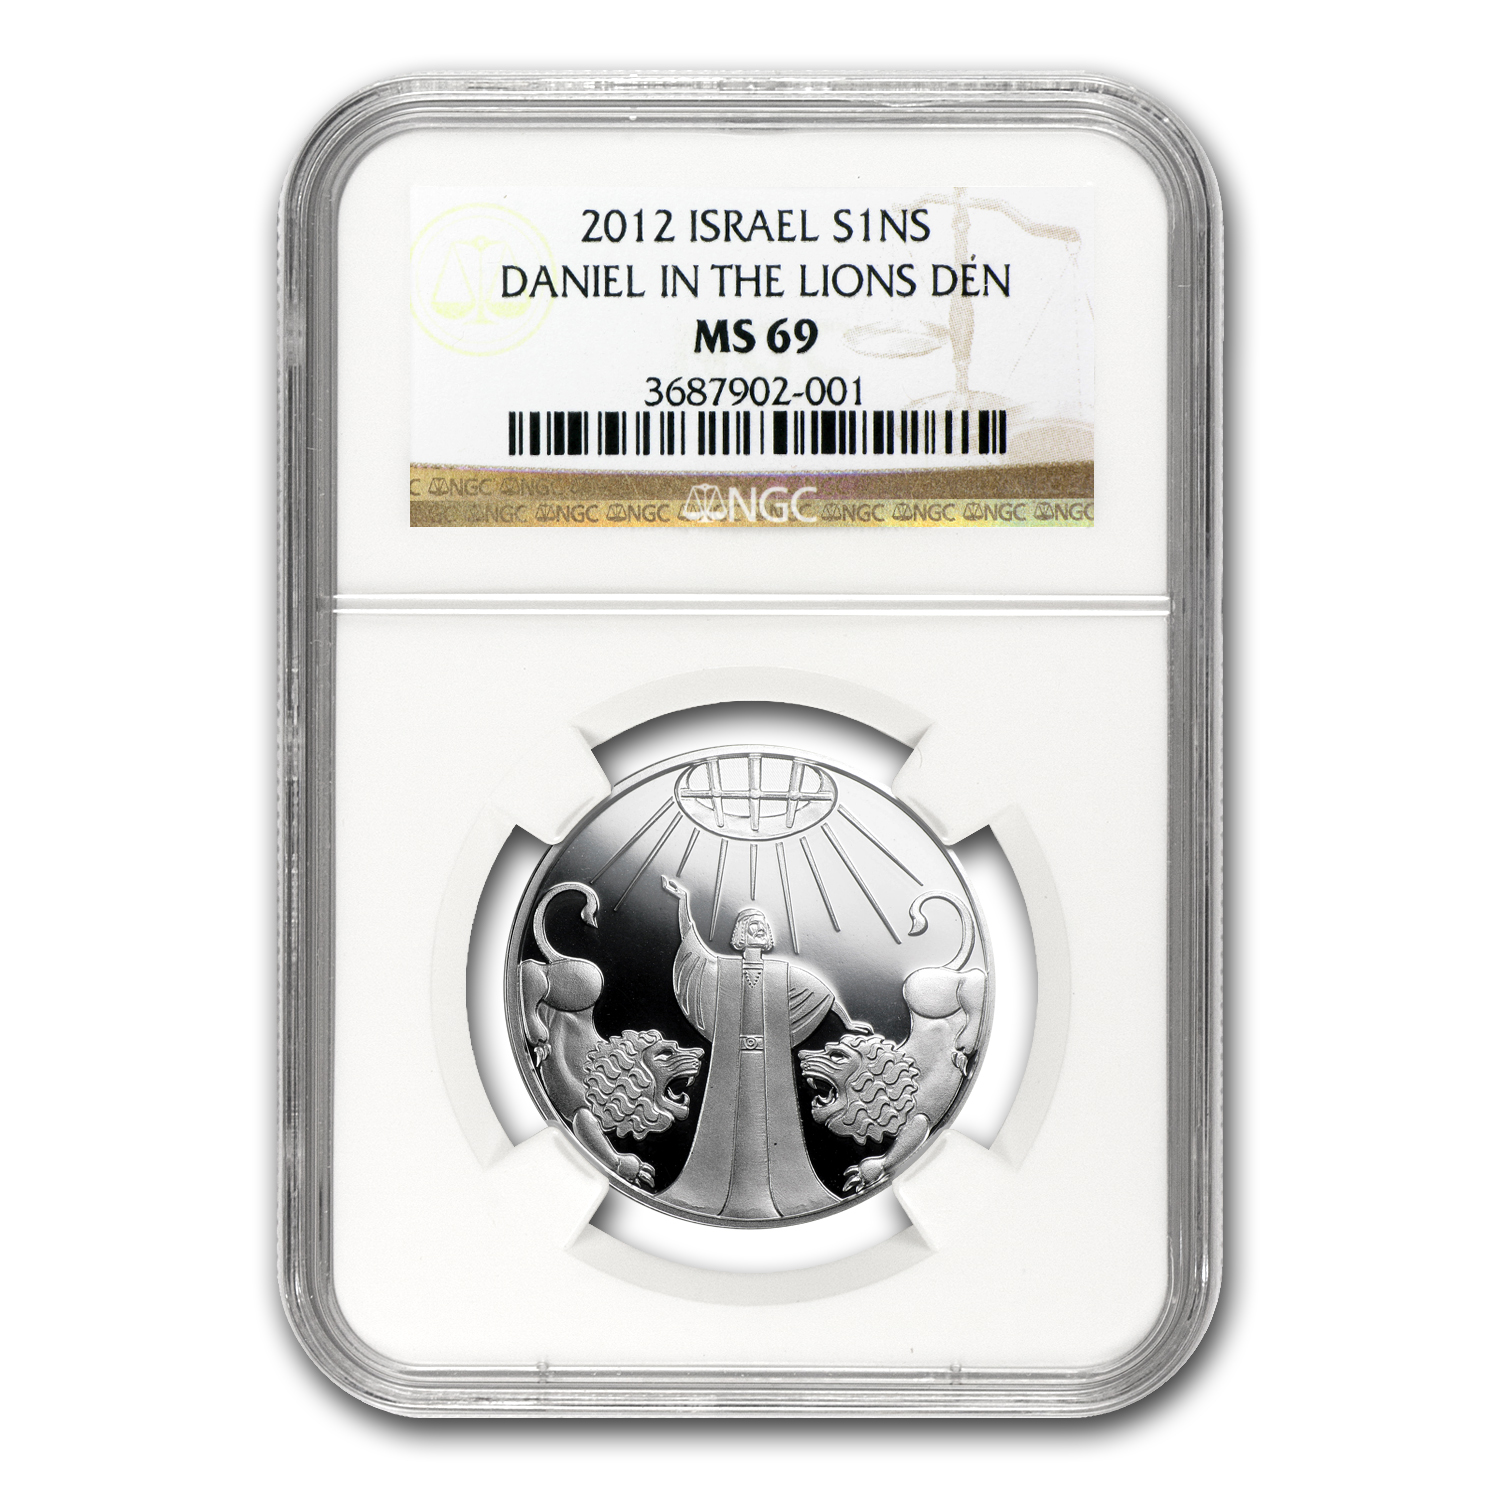 2012 Israel Daniel in the Lion's Den Silver 1 NIS MS-69 NGC